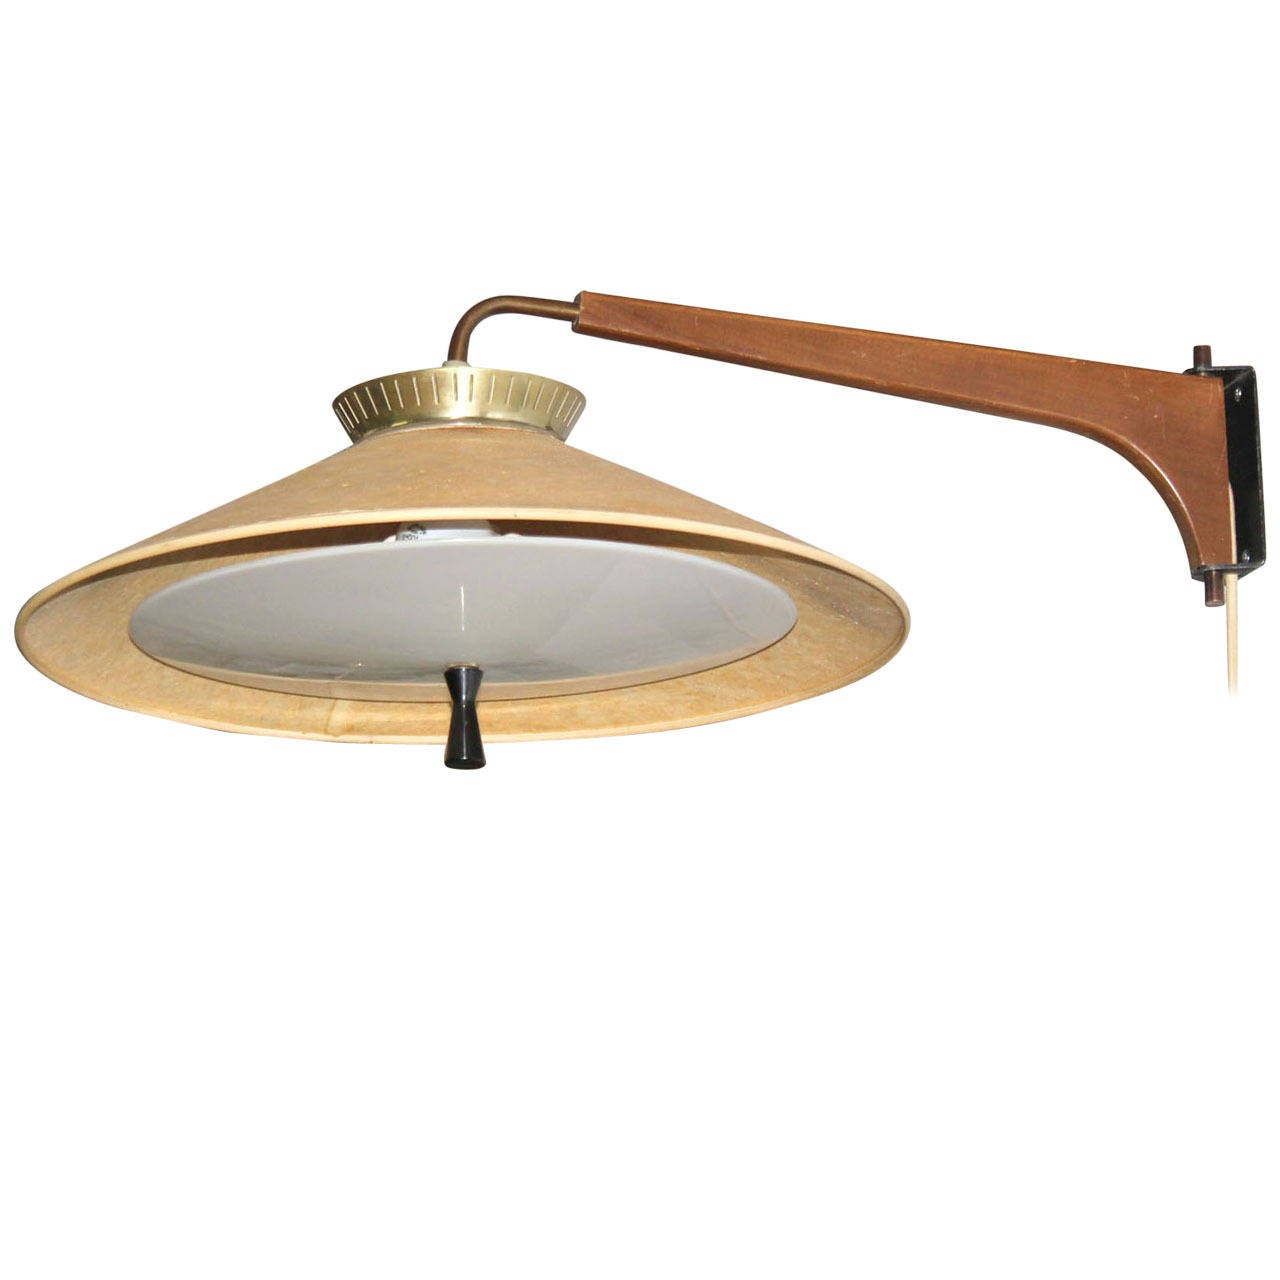 Mid century danish modern fully adjustable sconce light for Danish modern light fixtures